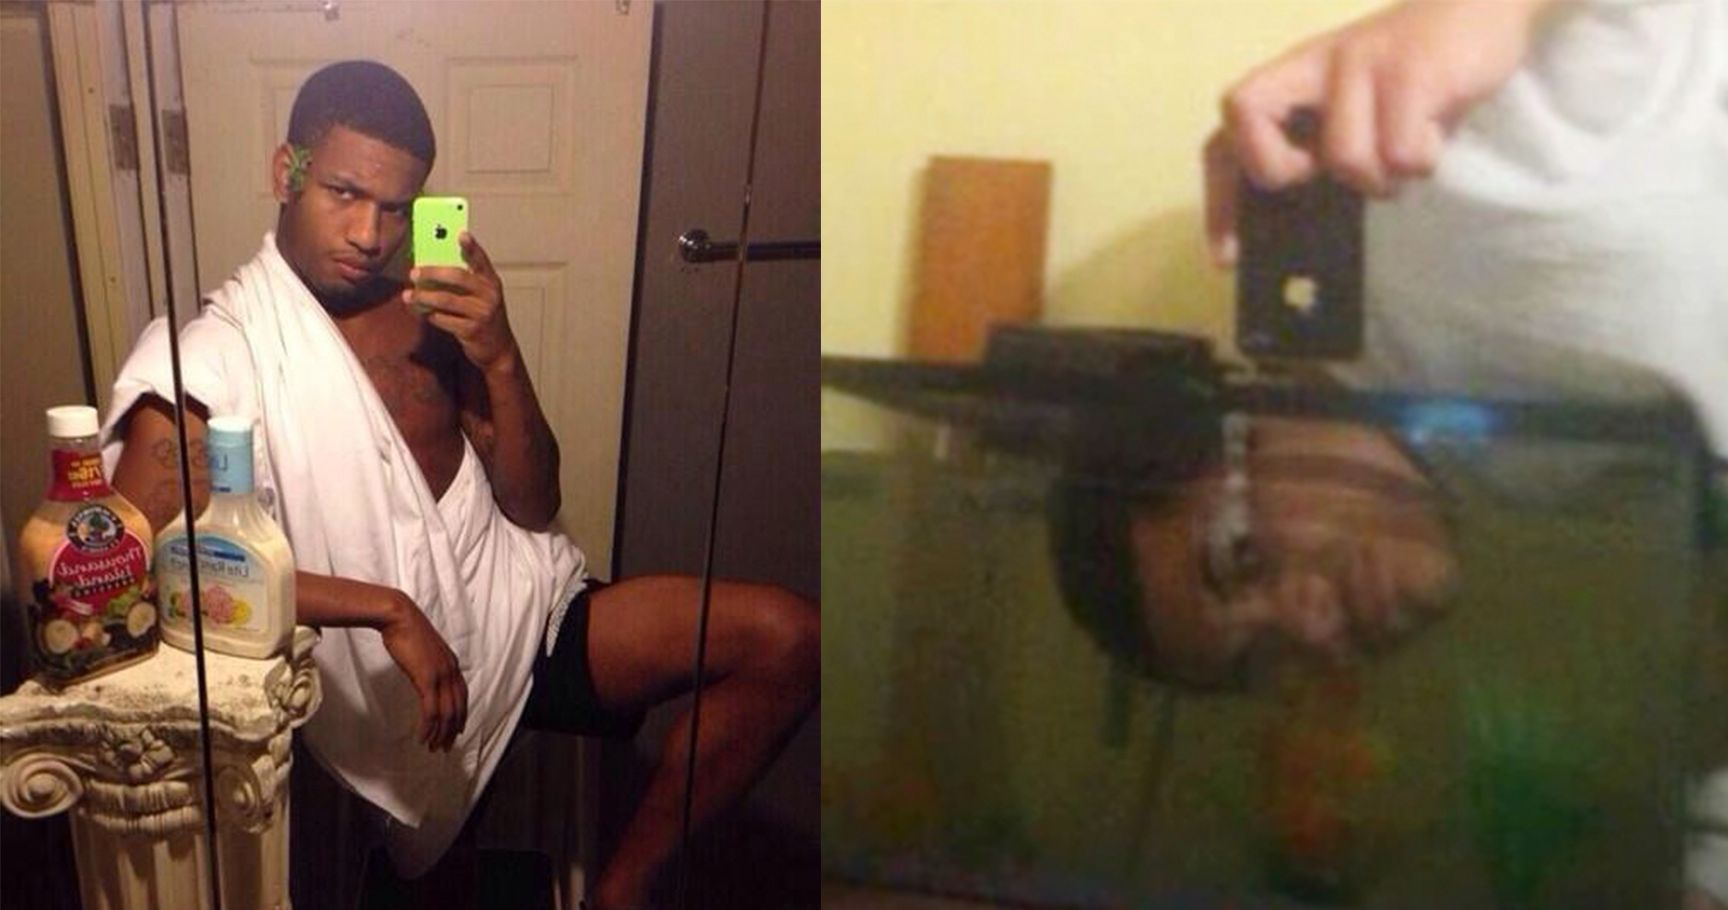 15 Ridiculous People Whose Selfie Games Are Extra AF